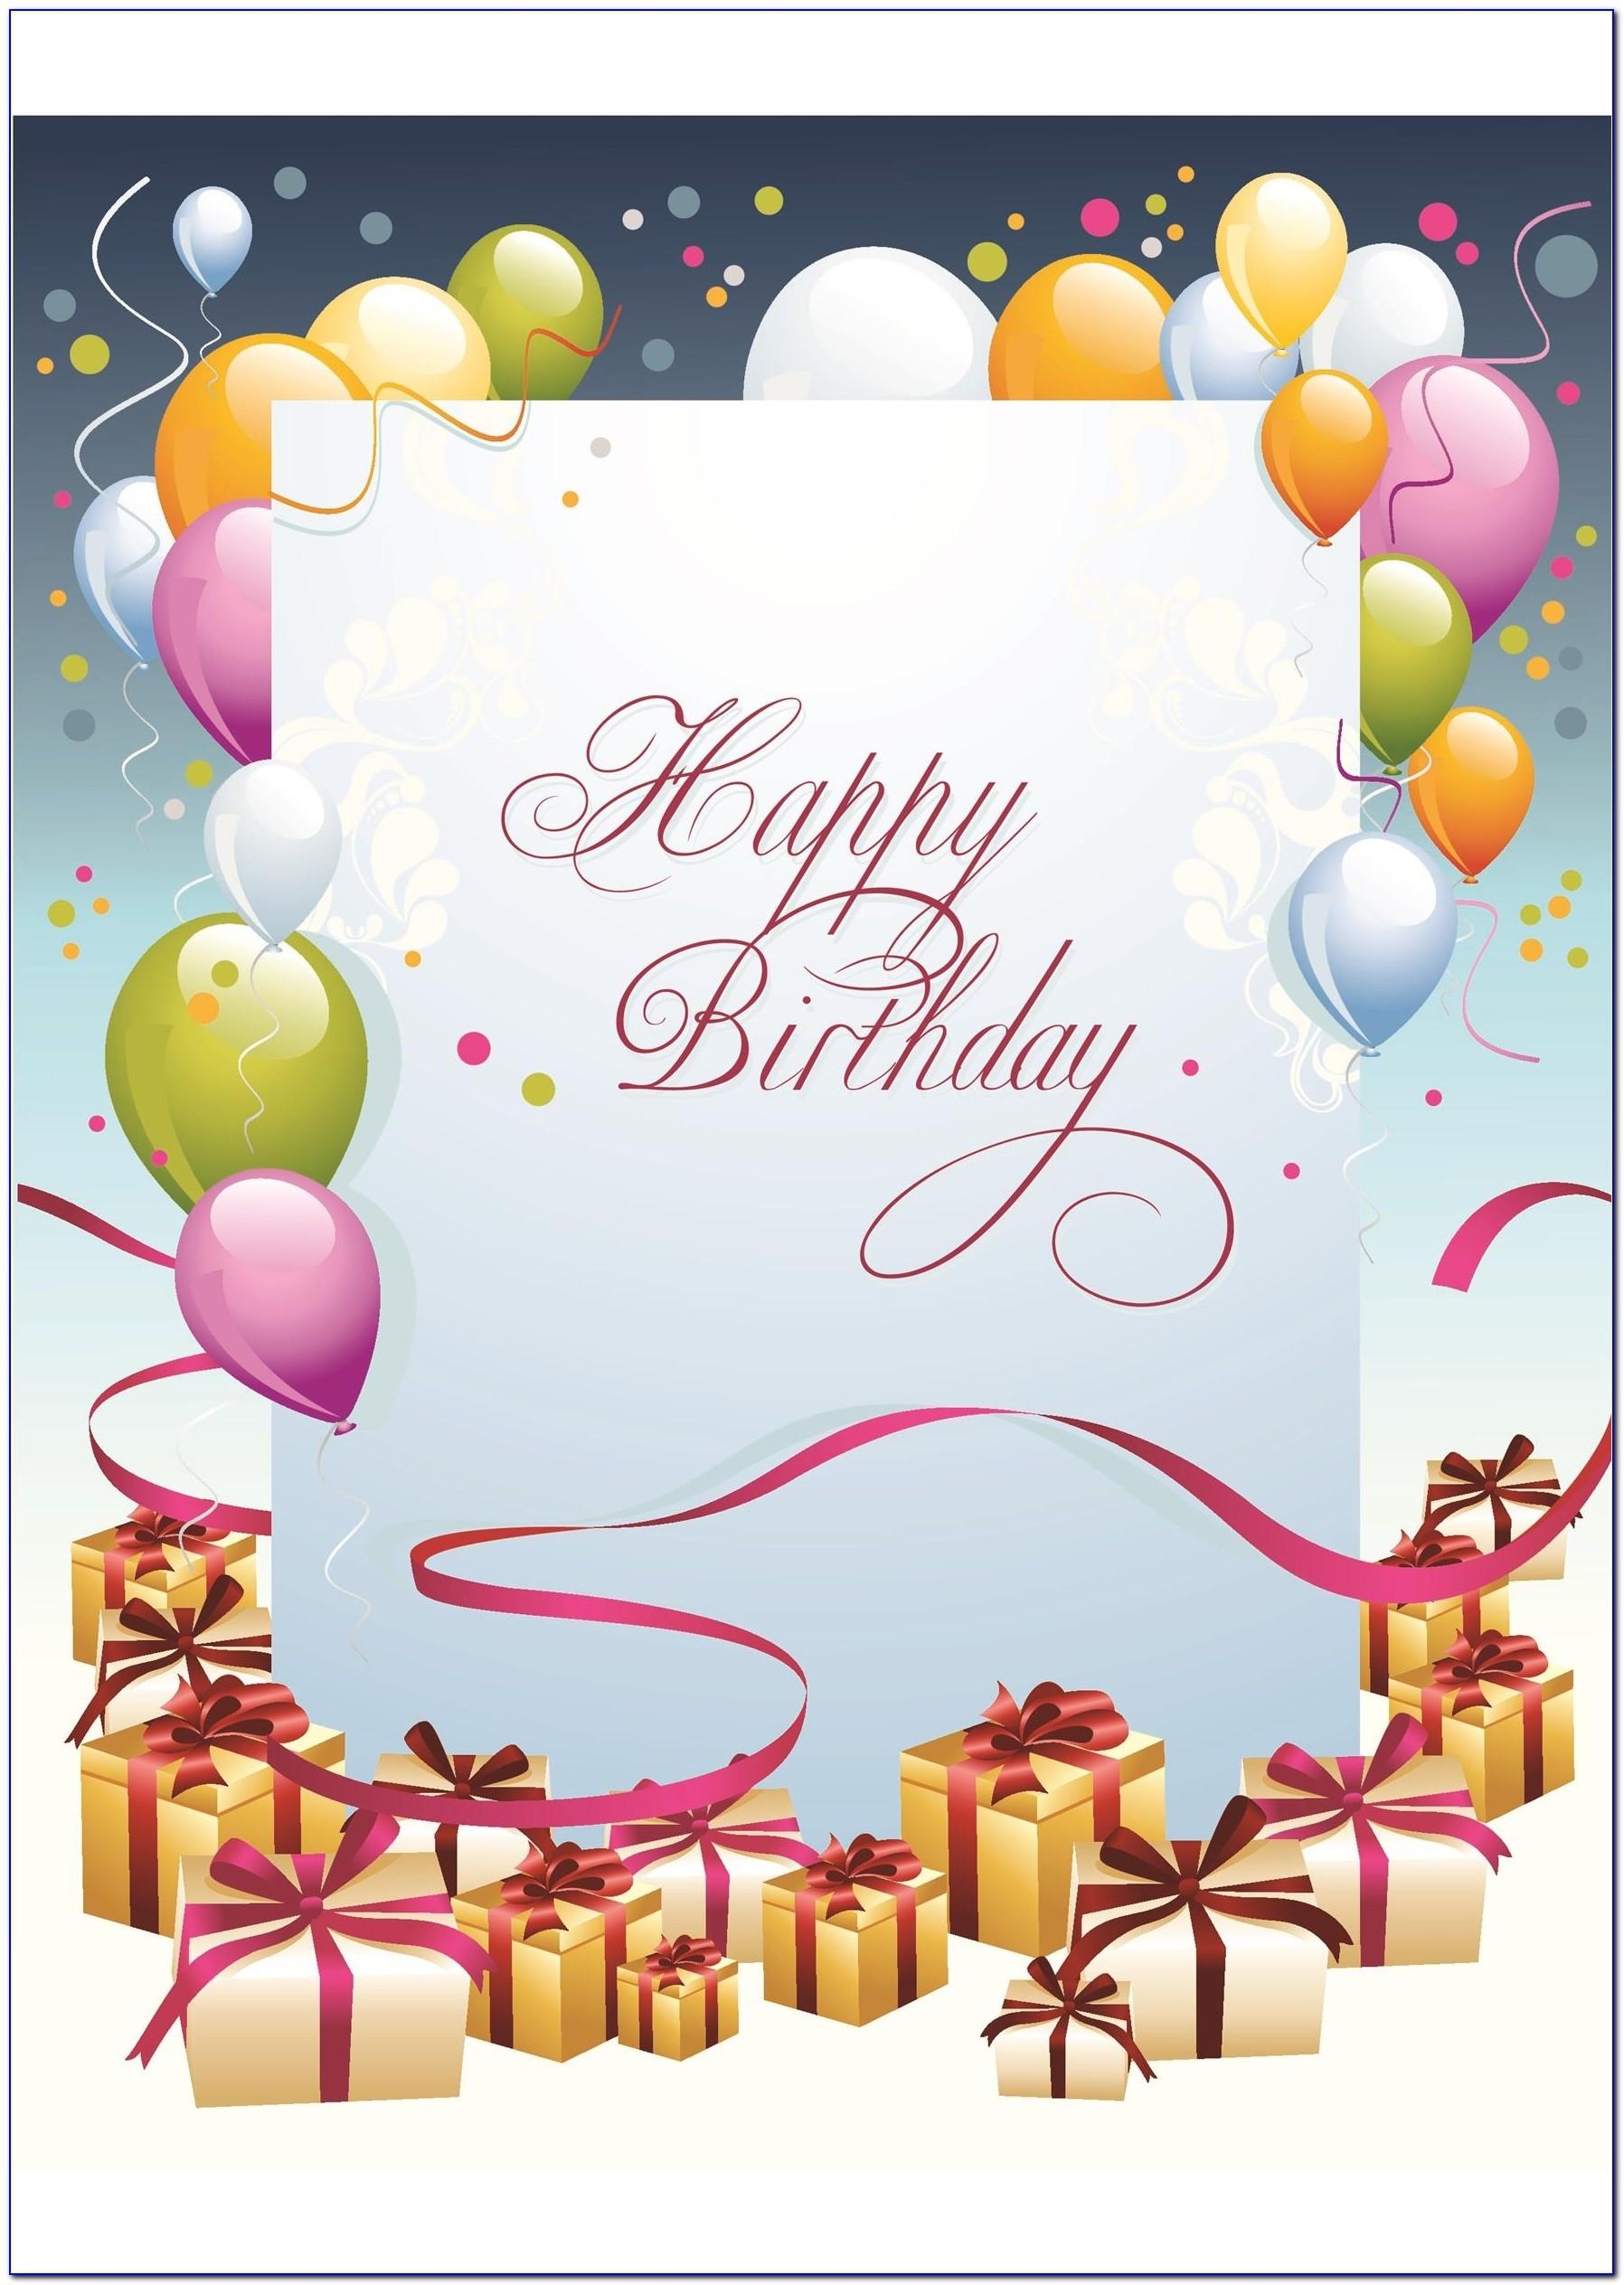 Happy Birthday Card For Daughter Free Download